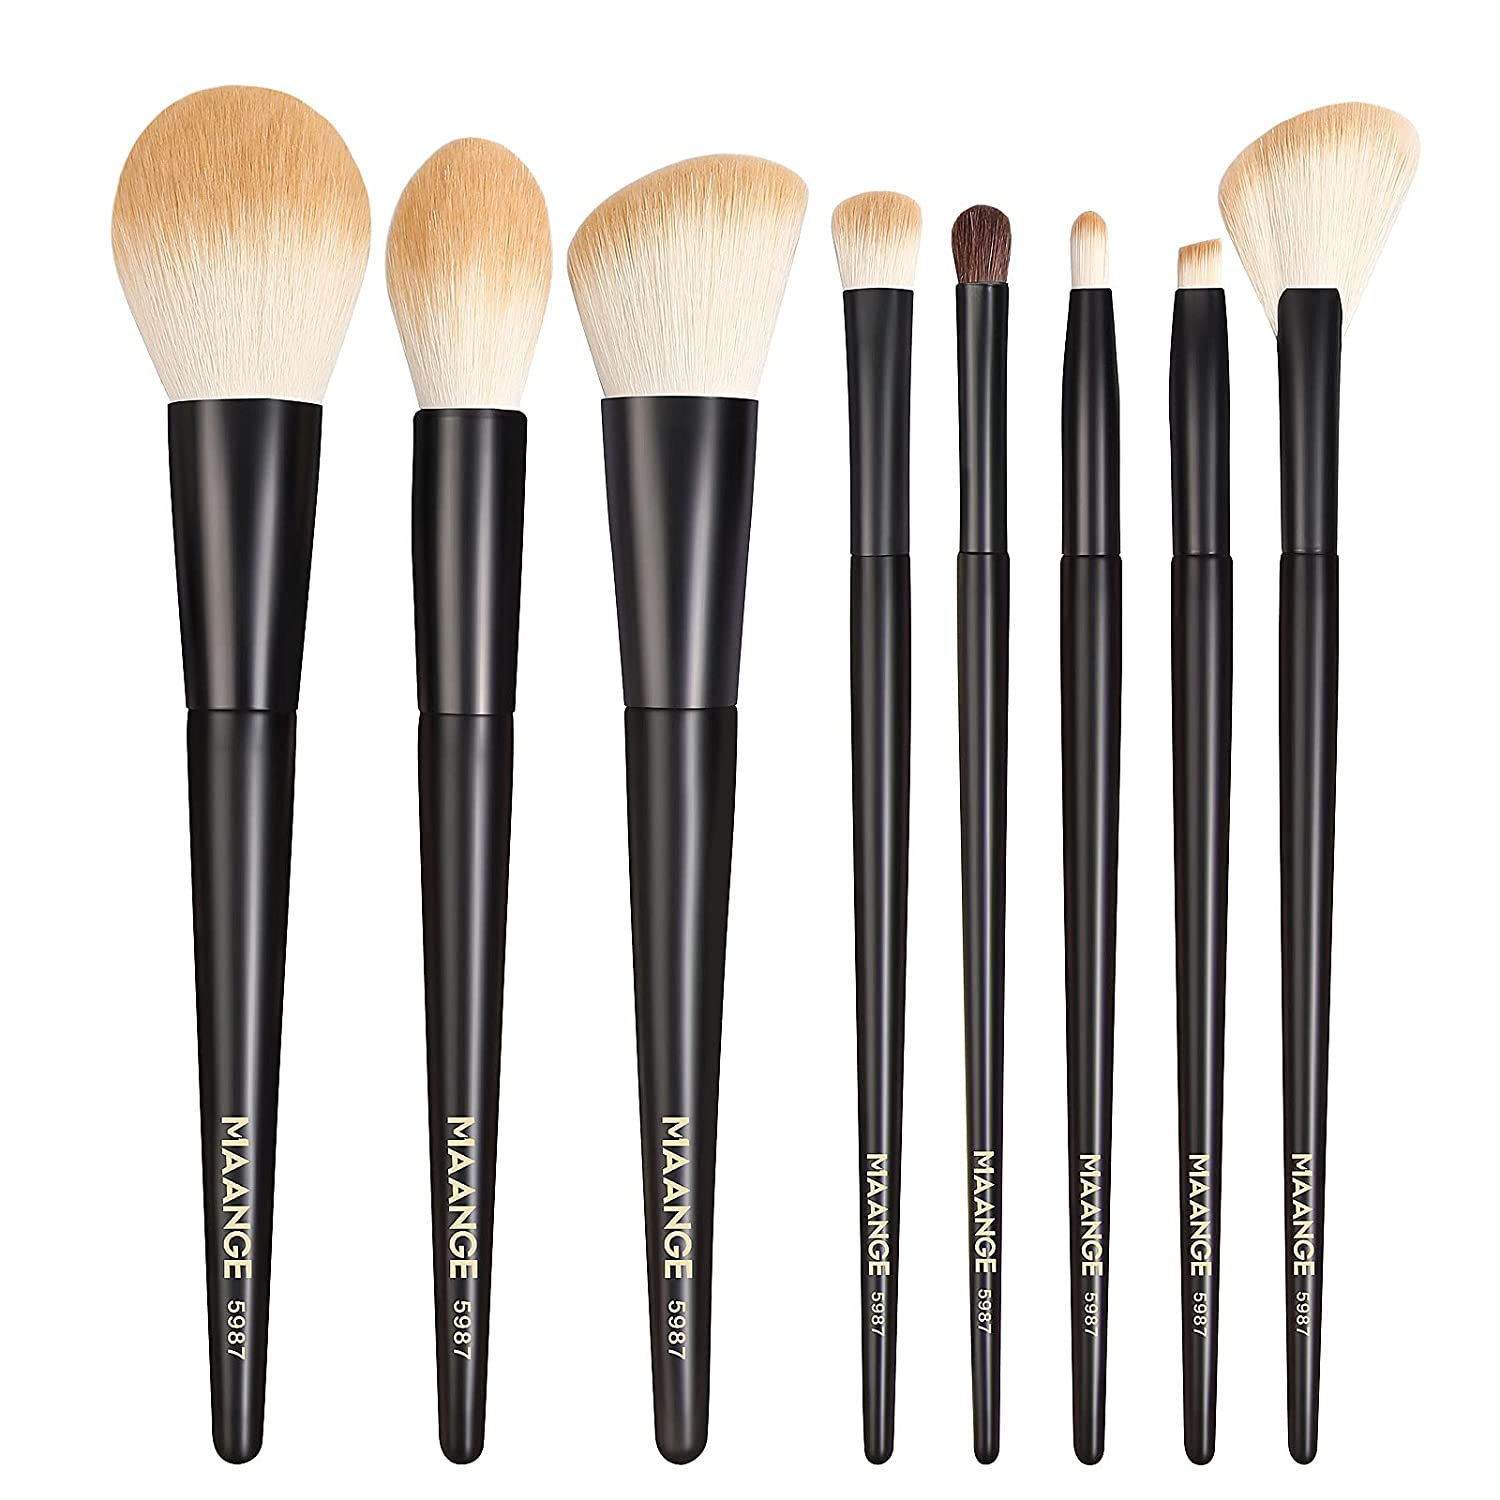 MAANGE Free shipping anywhere in the nation Free shipping New Makeup Brushes Premium Brush Synthetic Profes Set